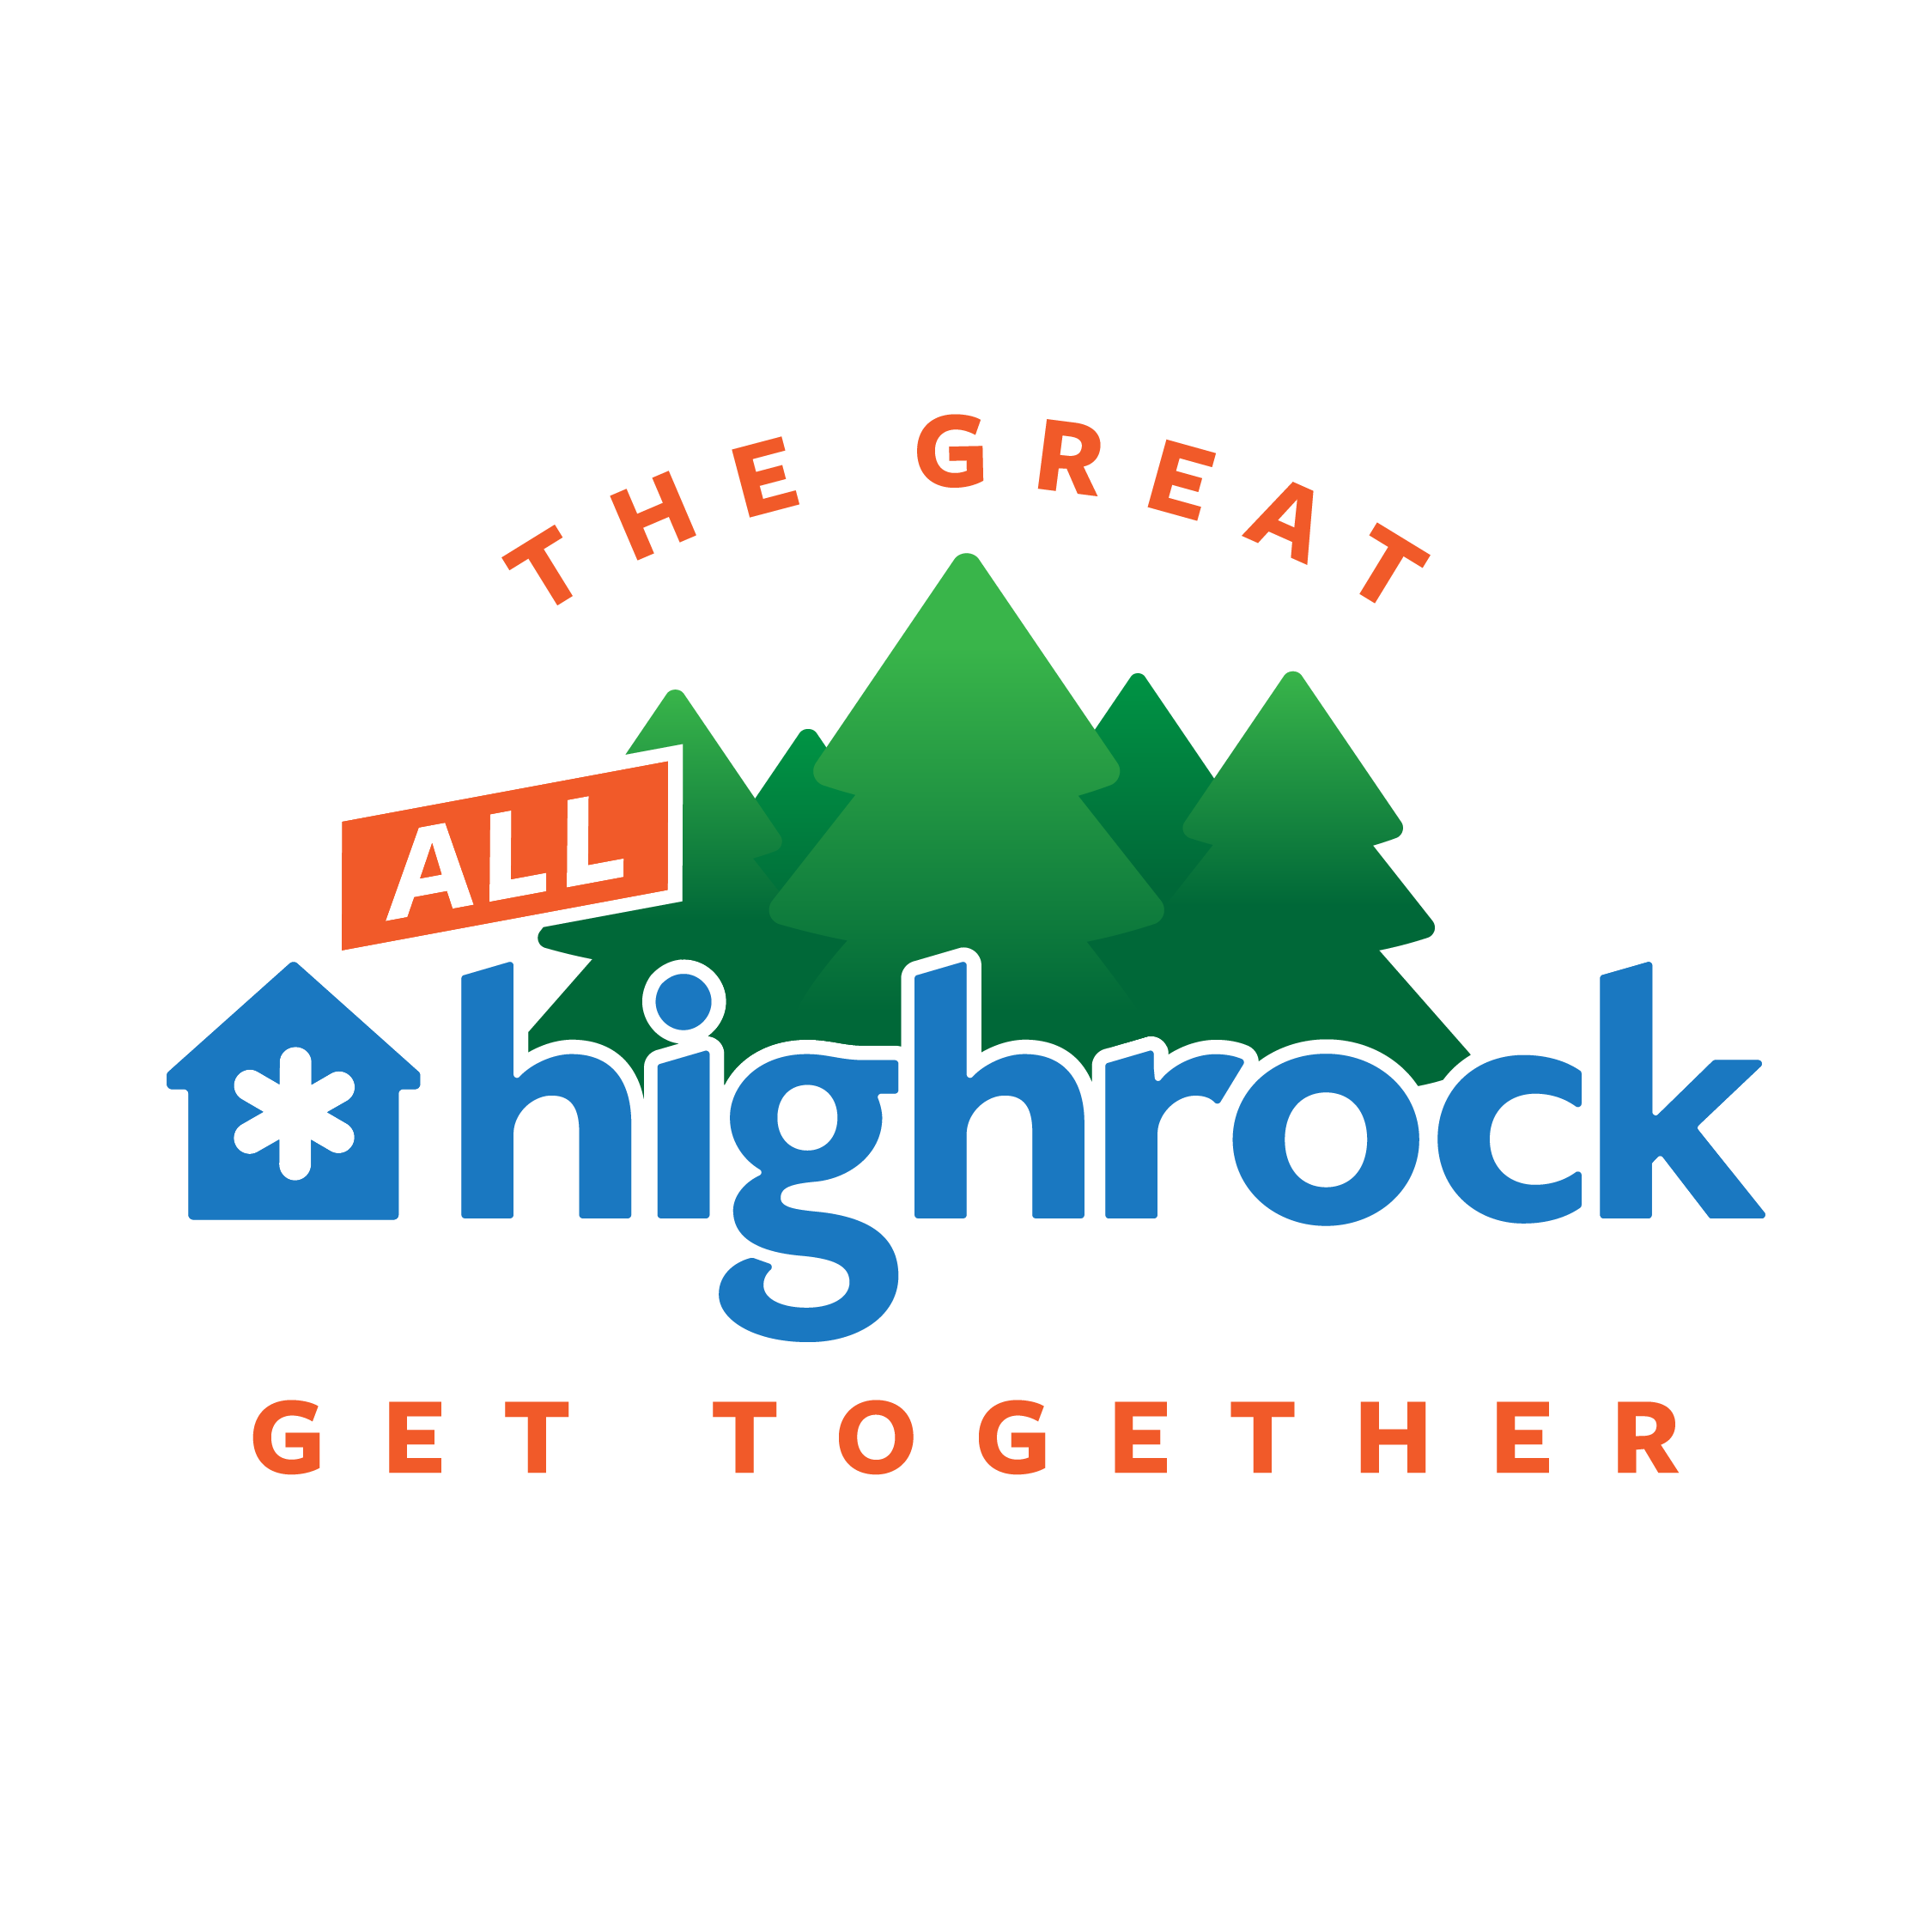 [LOGO] The Great All Highrock Get Together 2018 Color-Trans 1080x1080.png